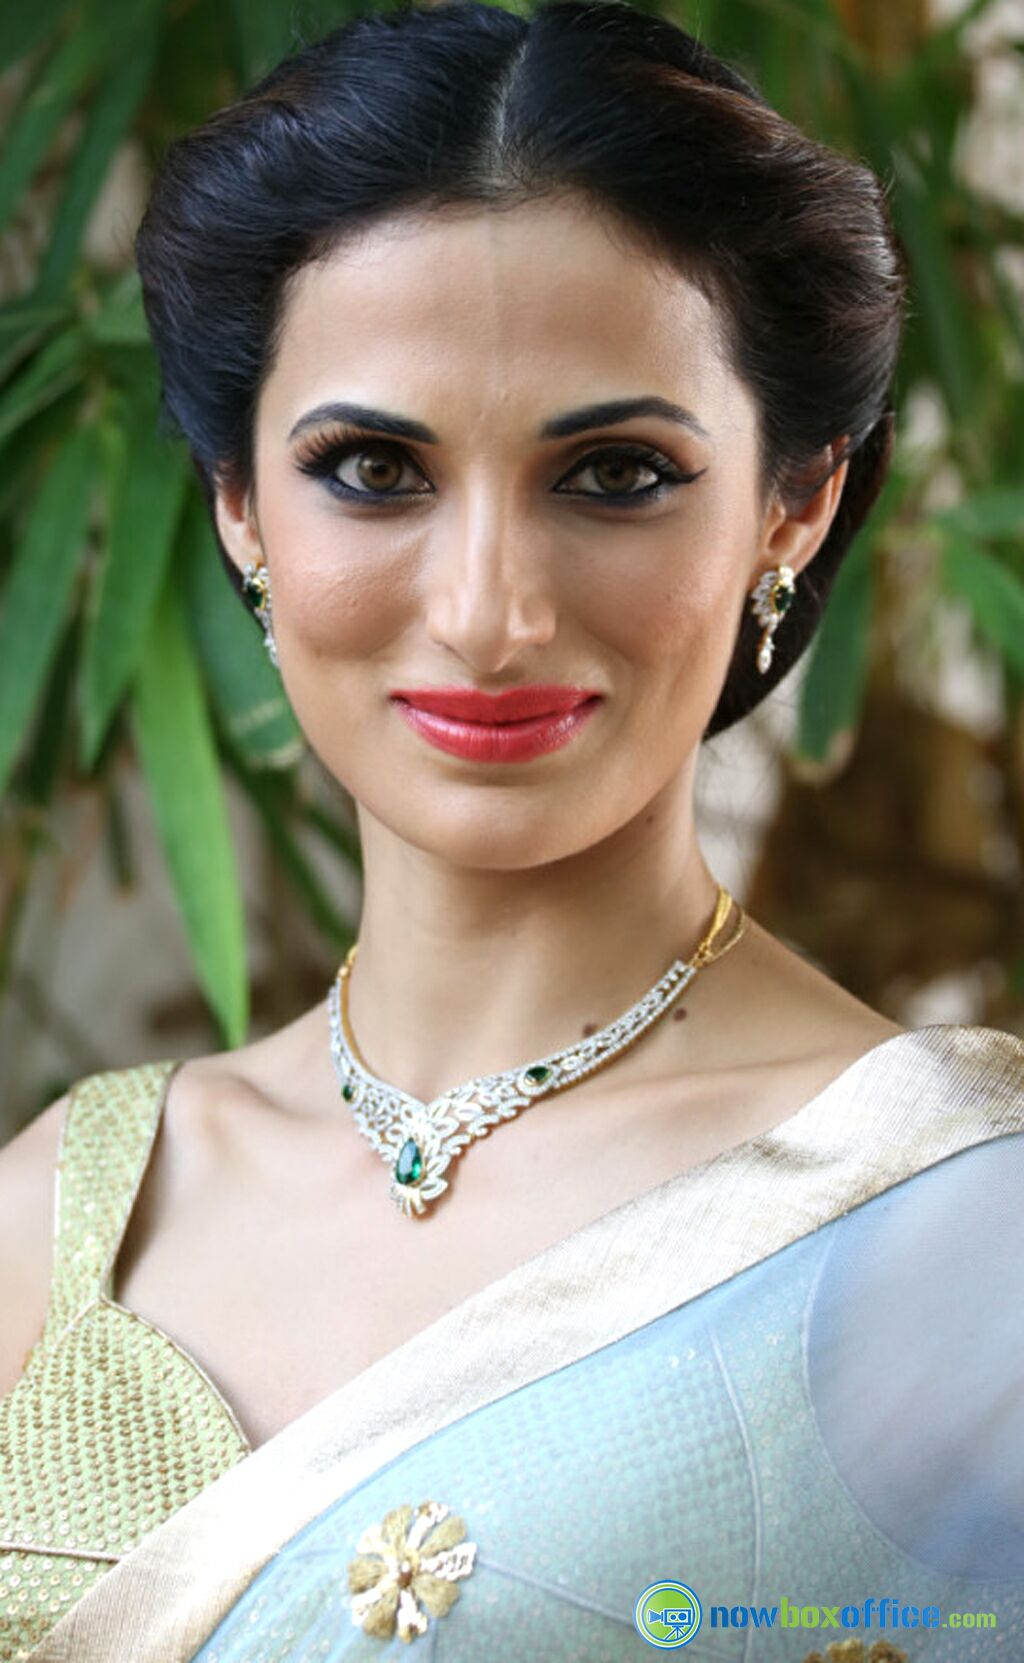 Shilpa reddy pictures news information from the web